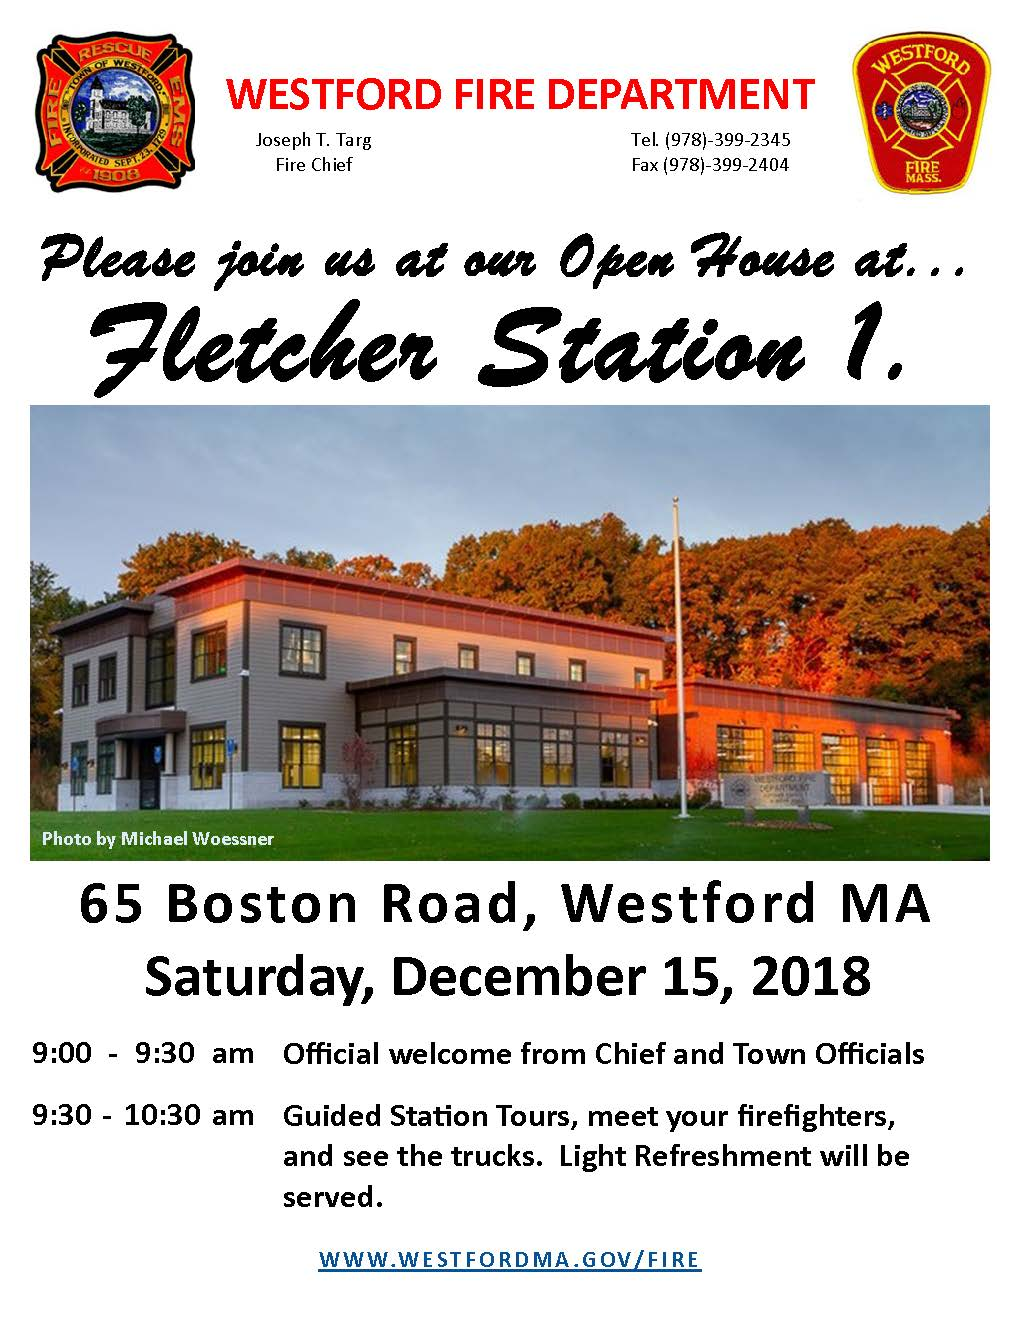 Fletcher Fire Station 1 Open House Flyer